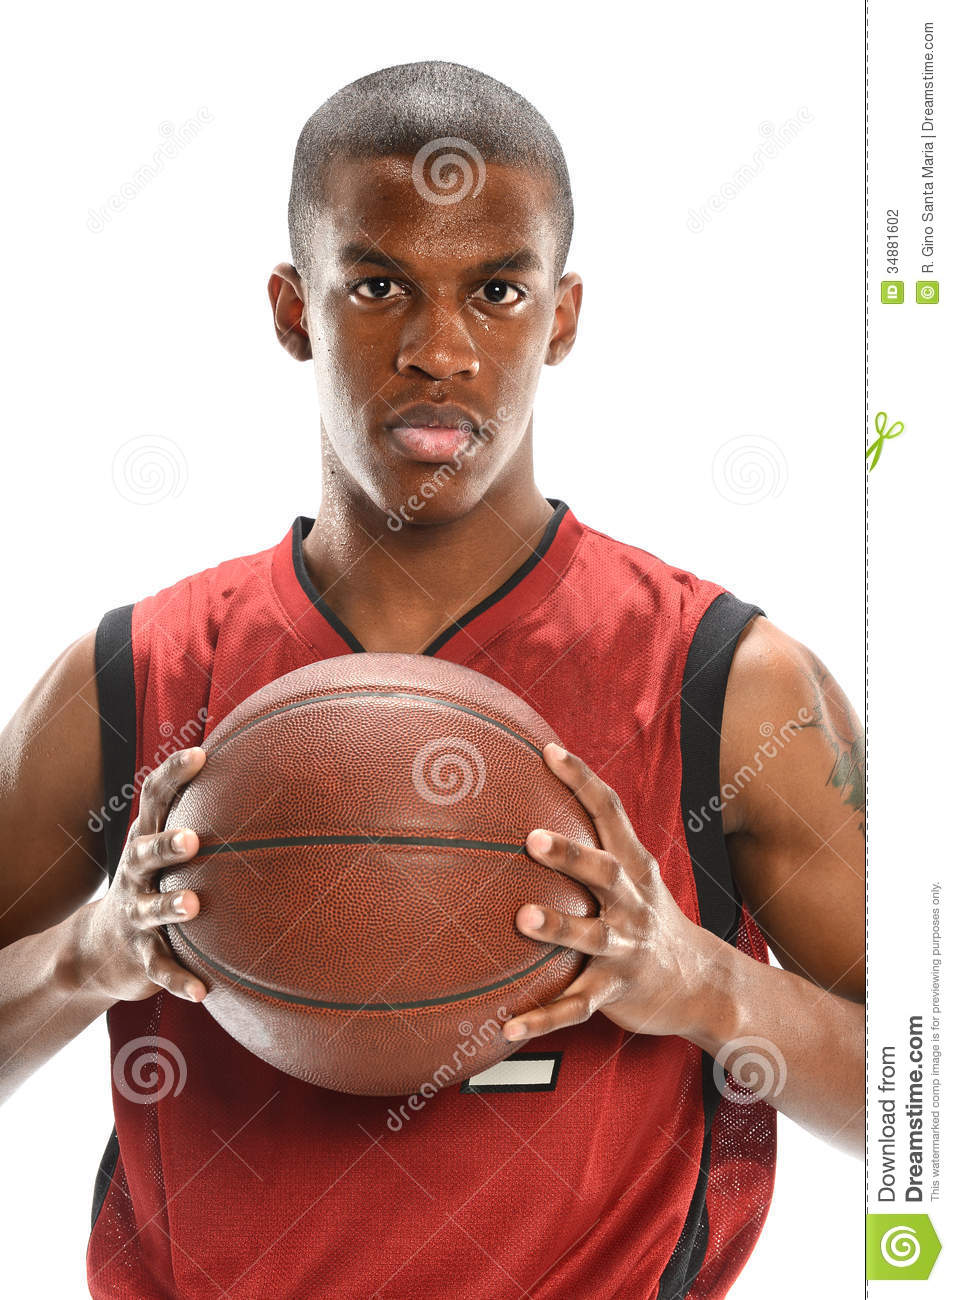 Portrait Of Basketball Player Stock Photo - Image of ...